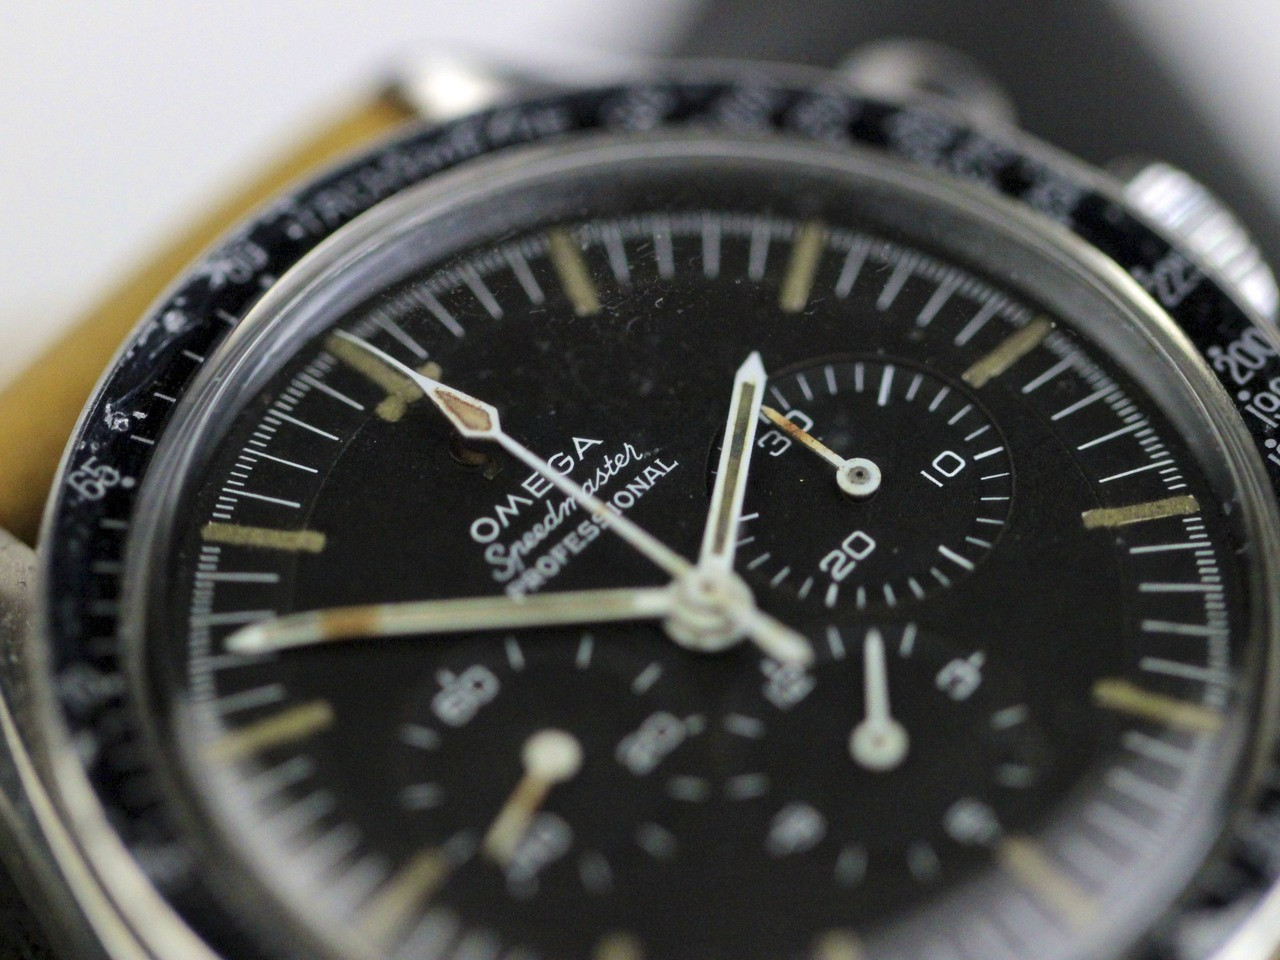 Black Dial Details - Omega Watch - Vintage 1967 Speedmaster Professional Pre-Moon Cal 321 - www. Legendoftime.com - Chicago Watch Center